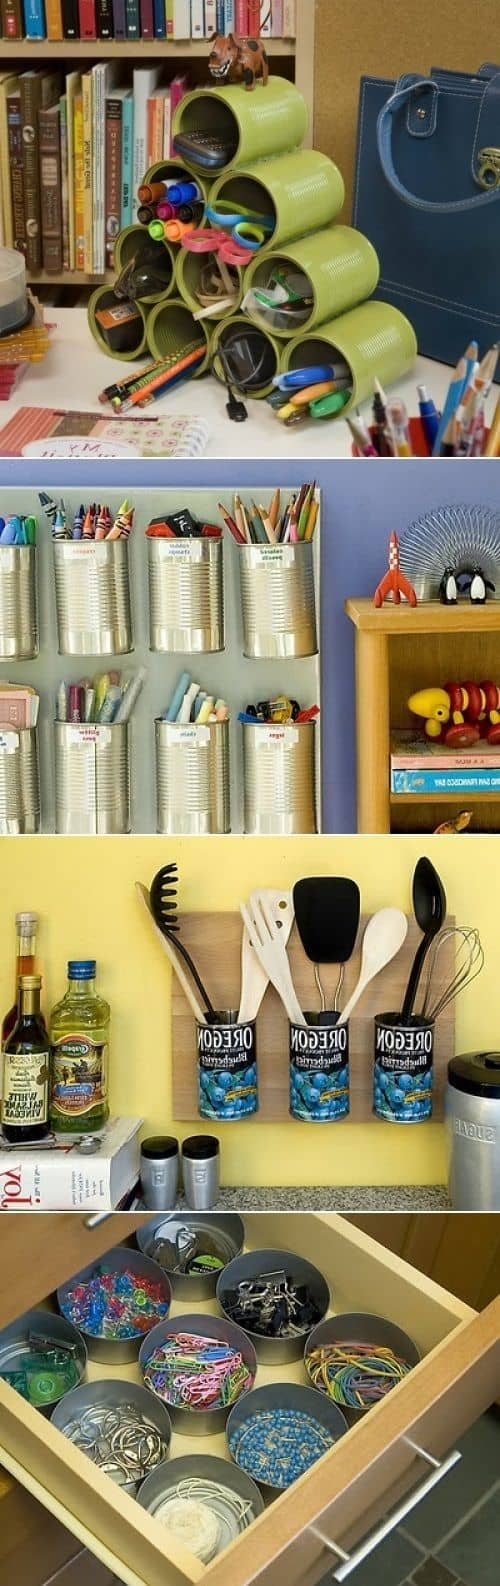 17 Innovative Ways To Recycle And Decorate Discarded Tin Cans For Everyday Use (11)